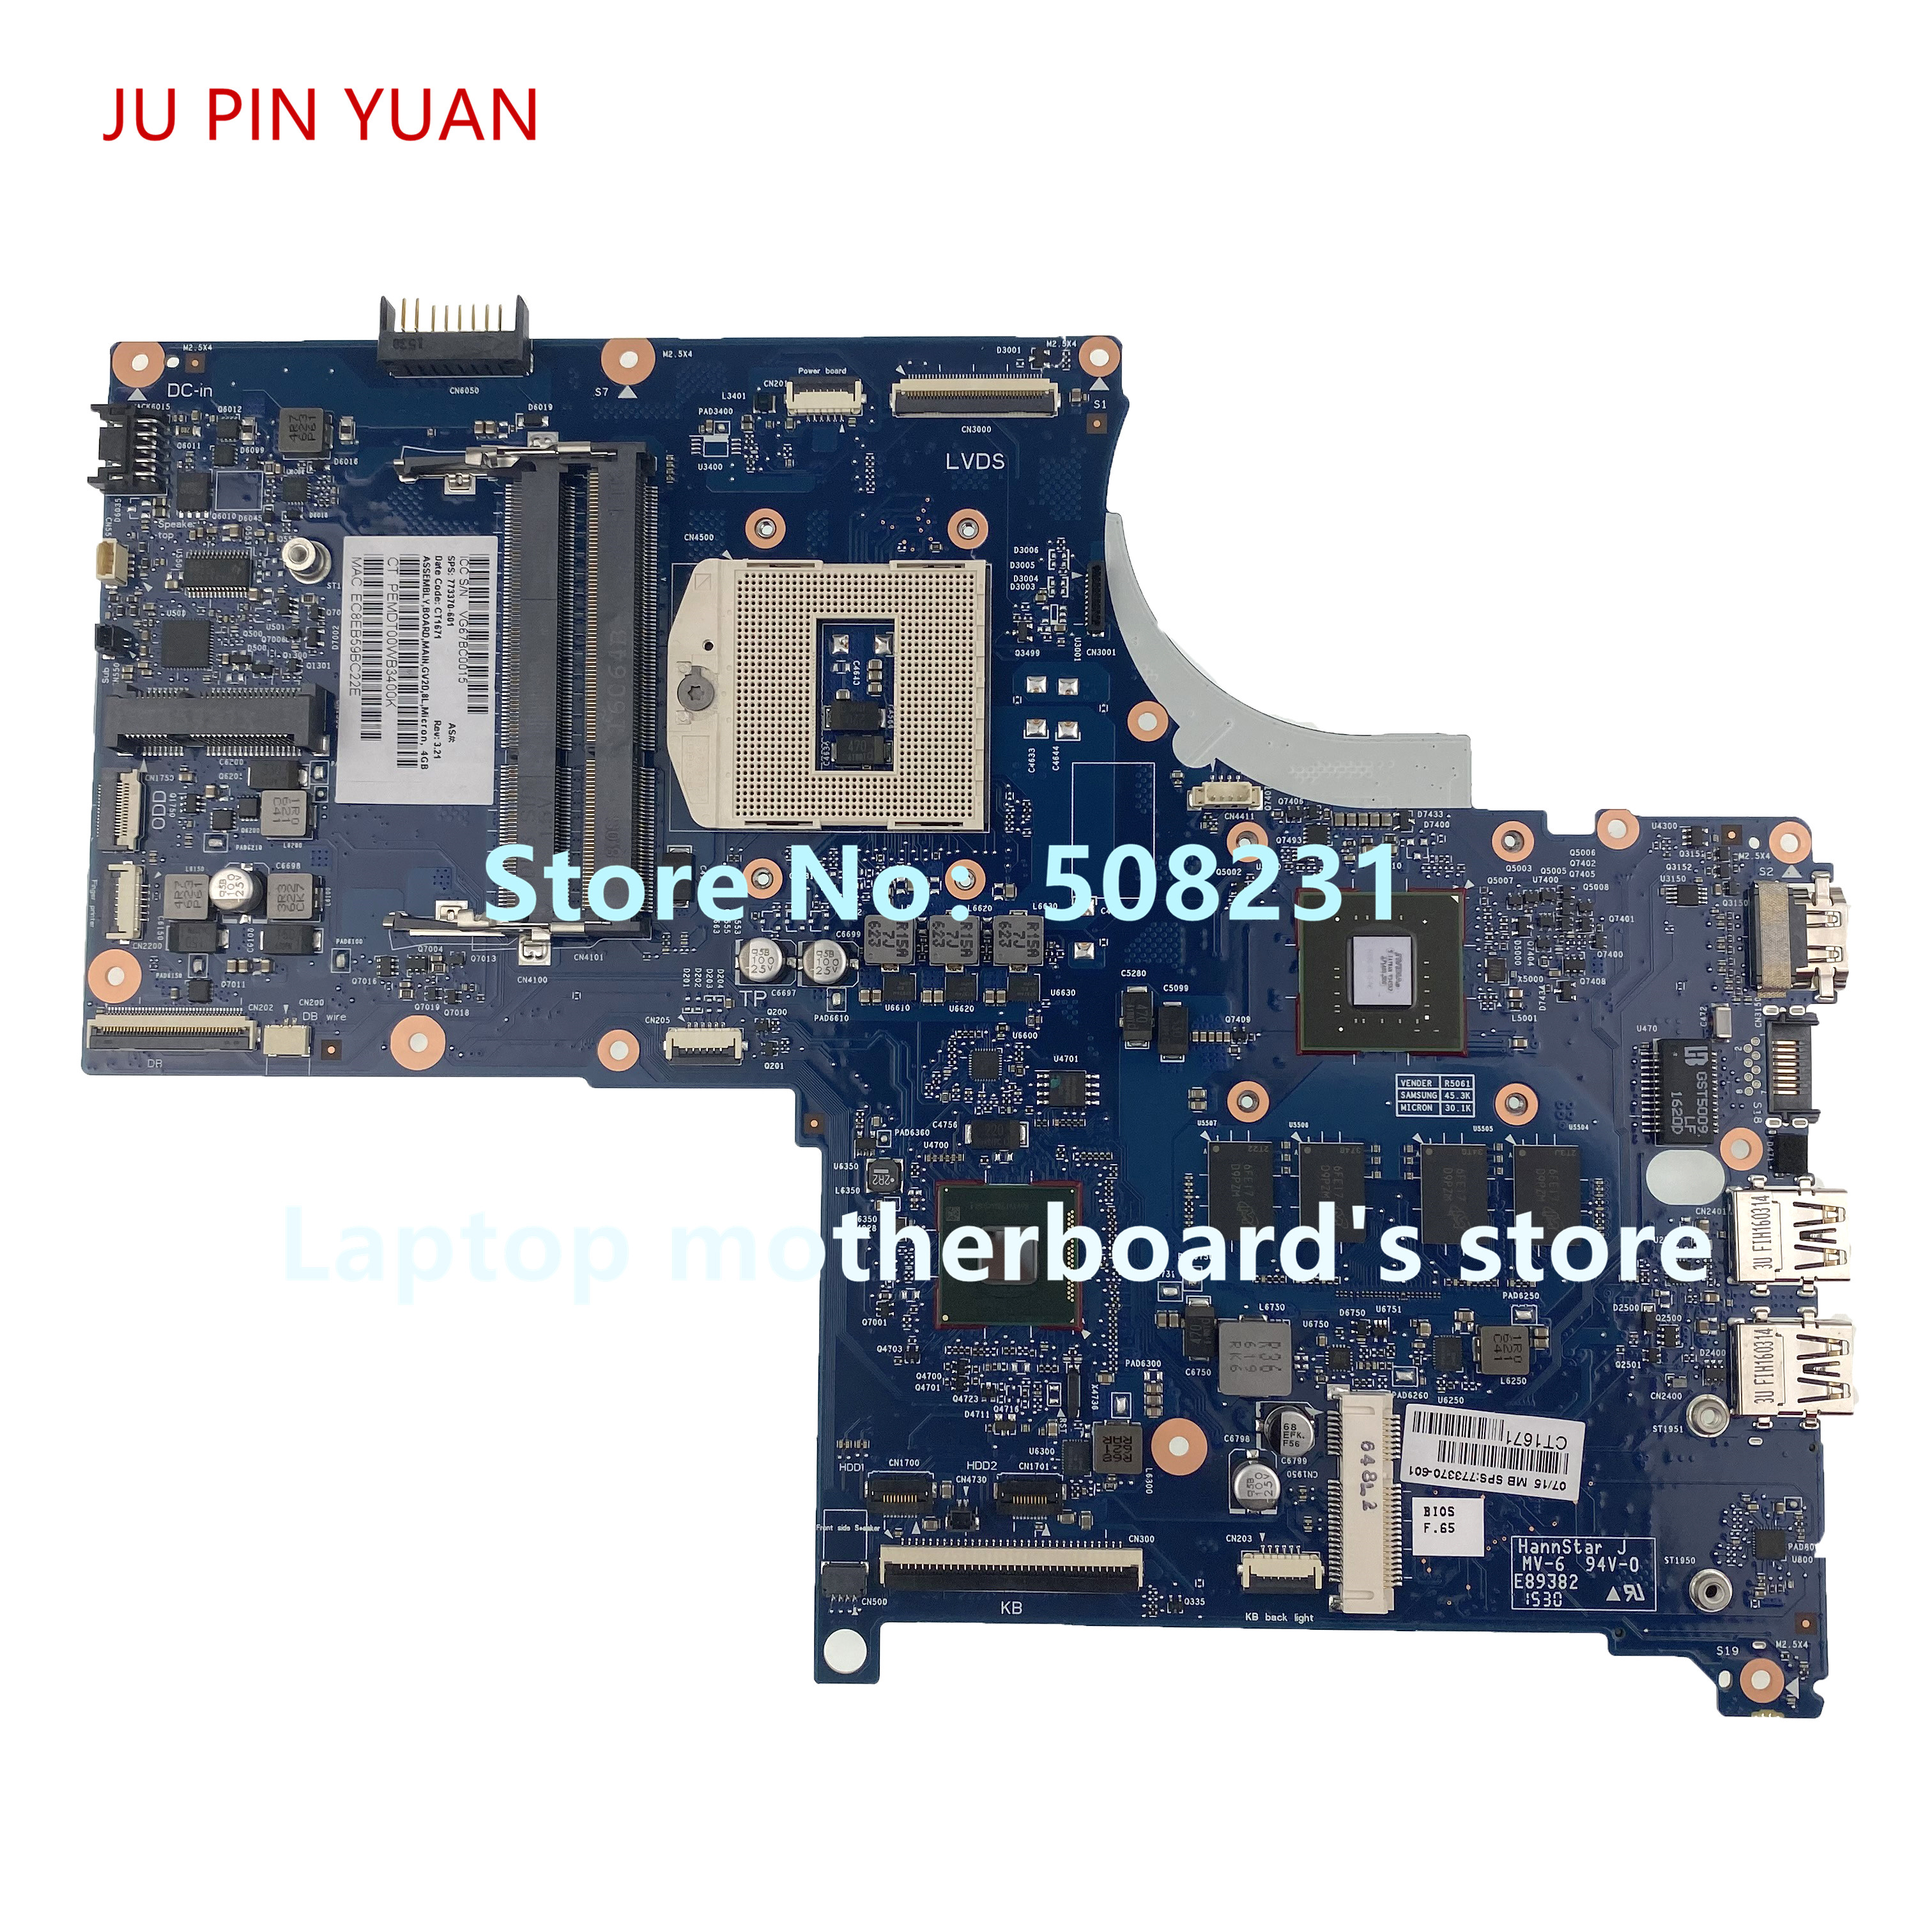 JU PIN YUAN 773370-001 For HP ENVY TOUCHSMART 17-J Laptop Motherboard With HM87 840M/2G 100% Fully Tested